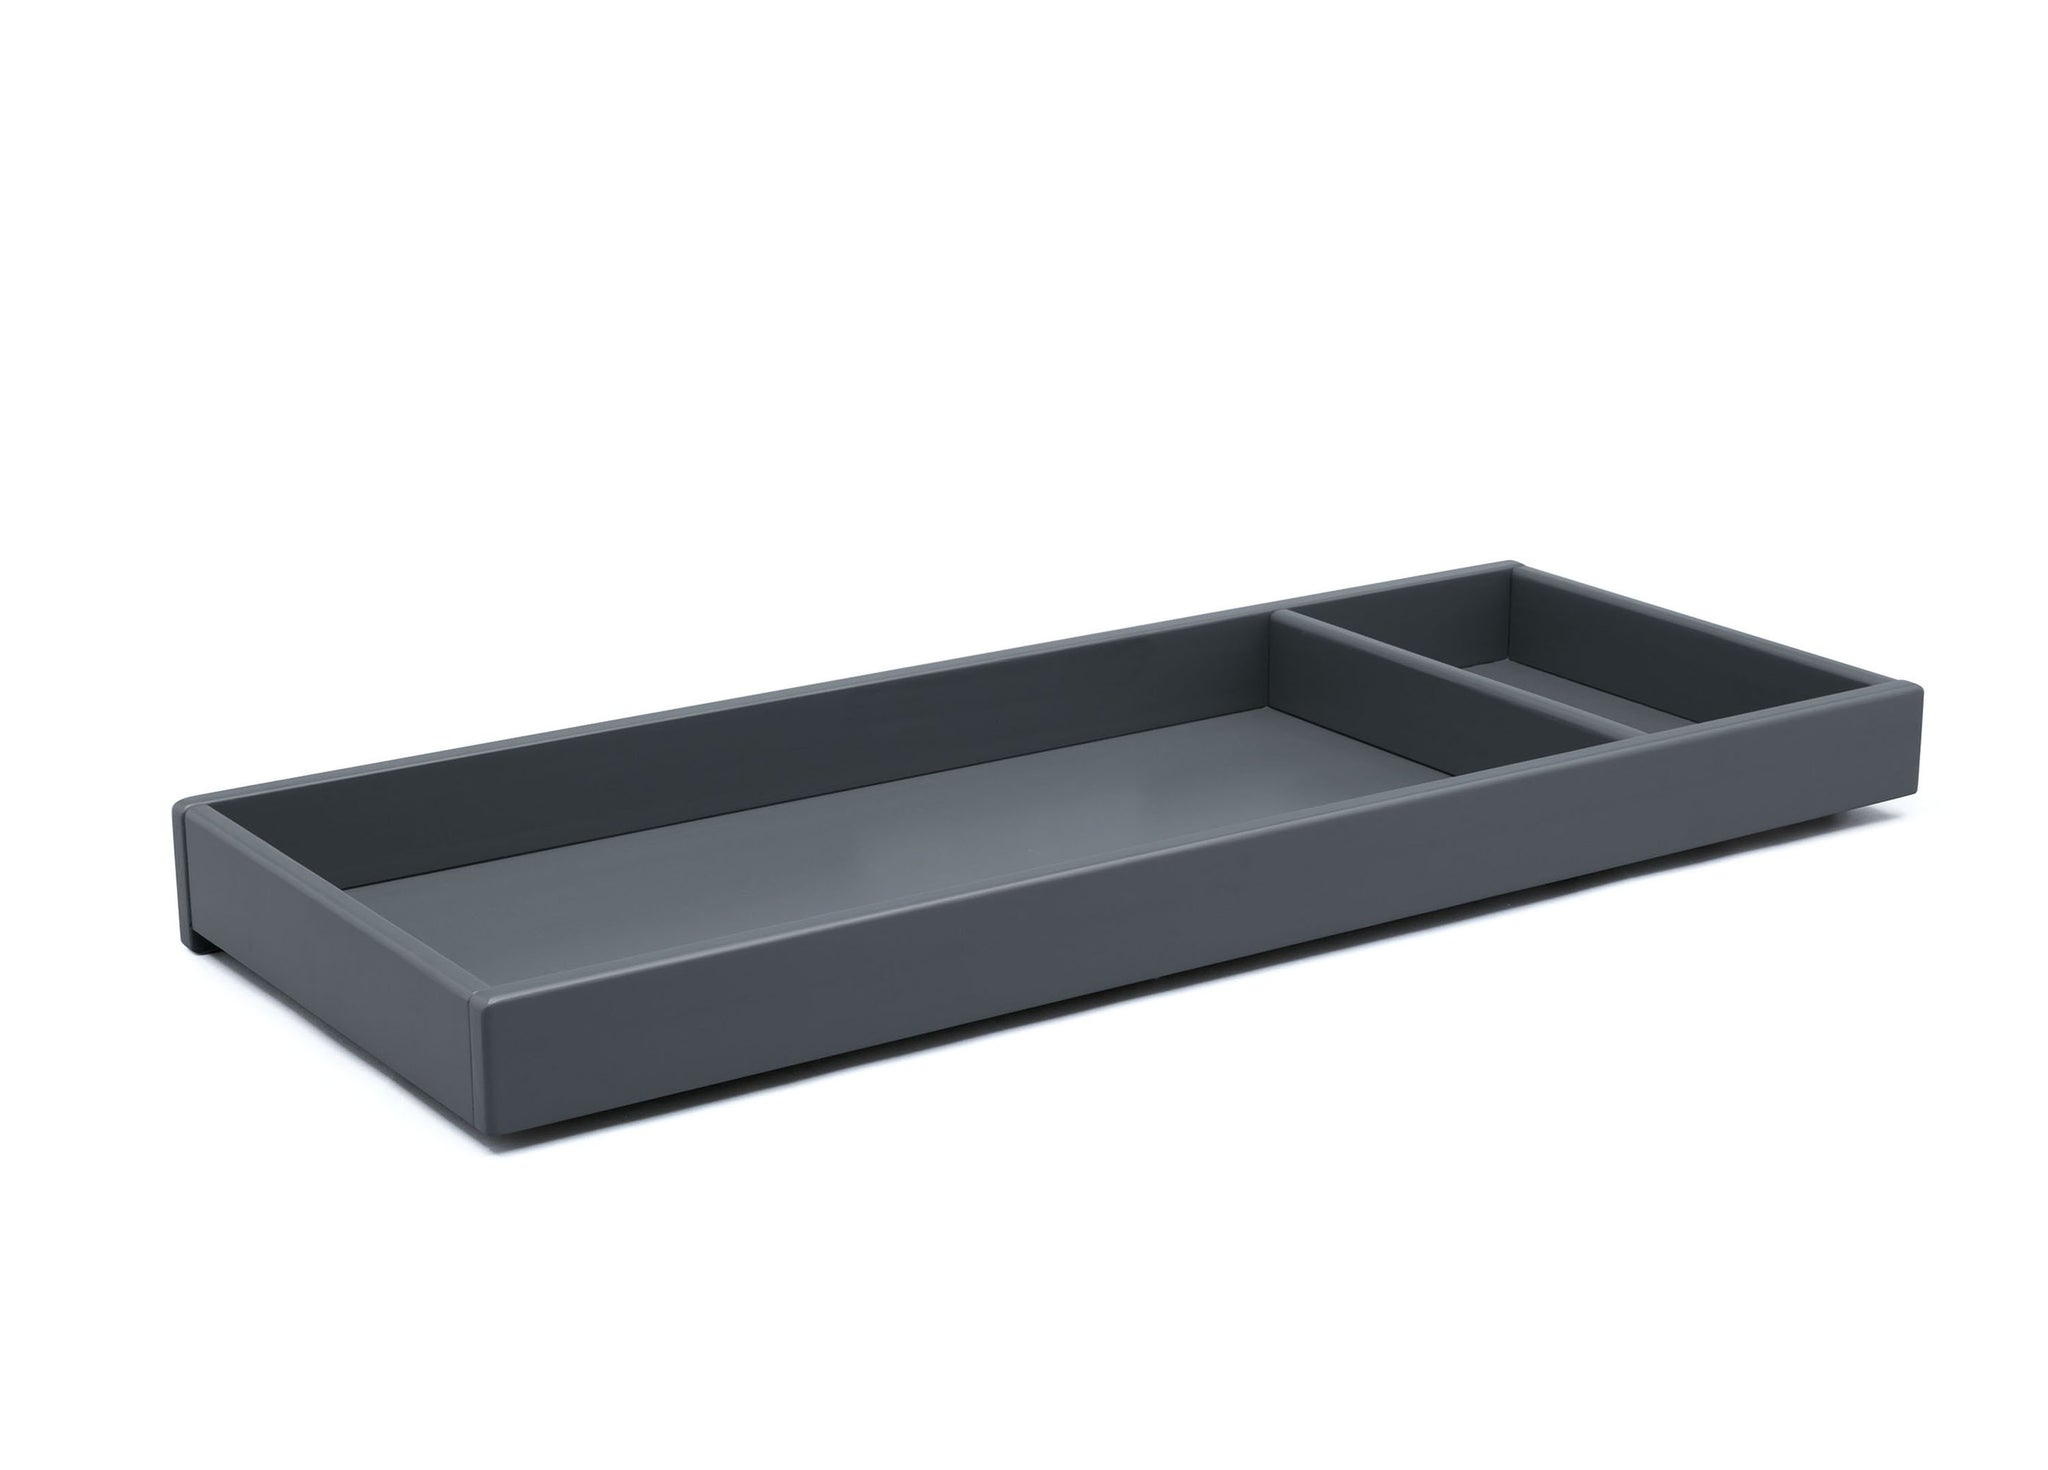 Avery Changing Tray (Charcoal Grey)